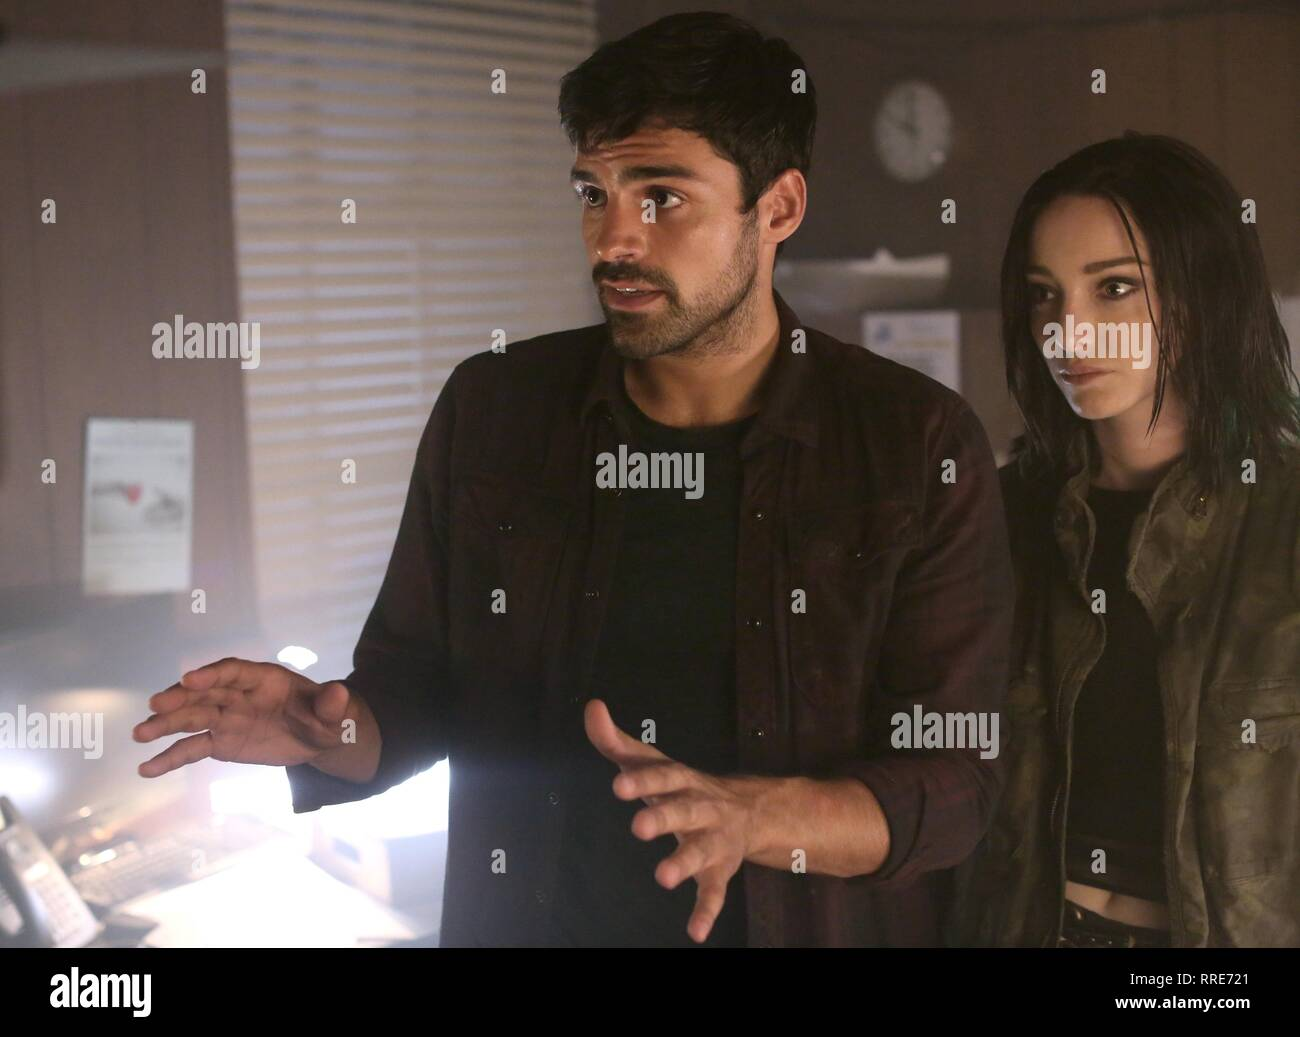 THE GIFTED, SEAN TEALE , EMMA DUMONT, 2017 - Stock Image